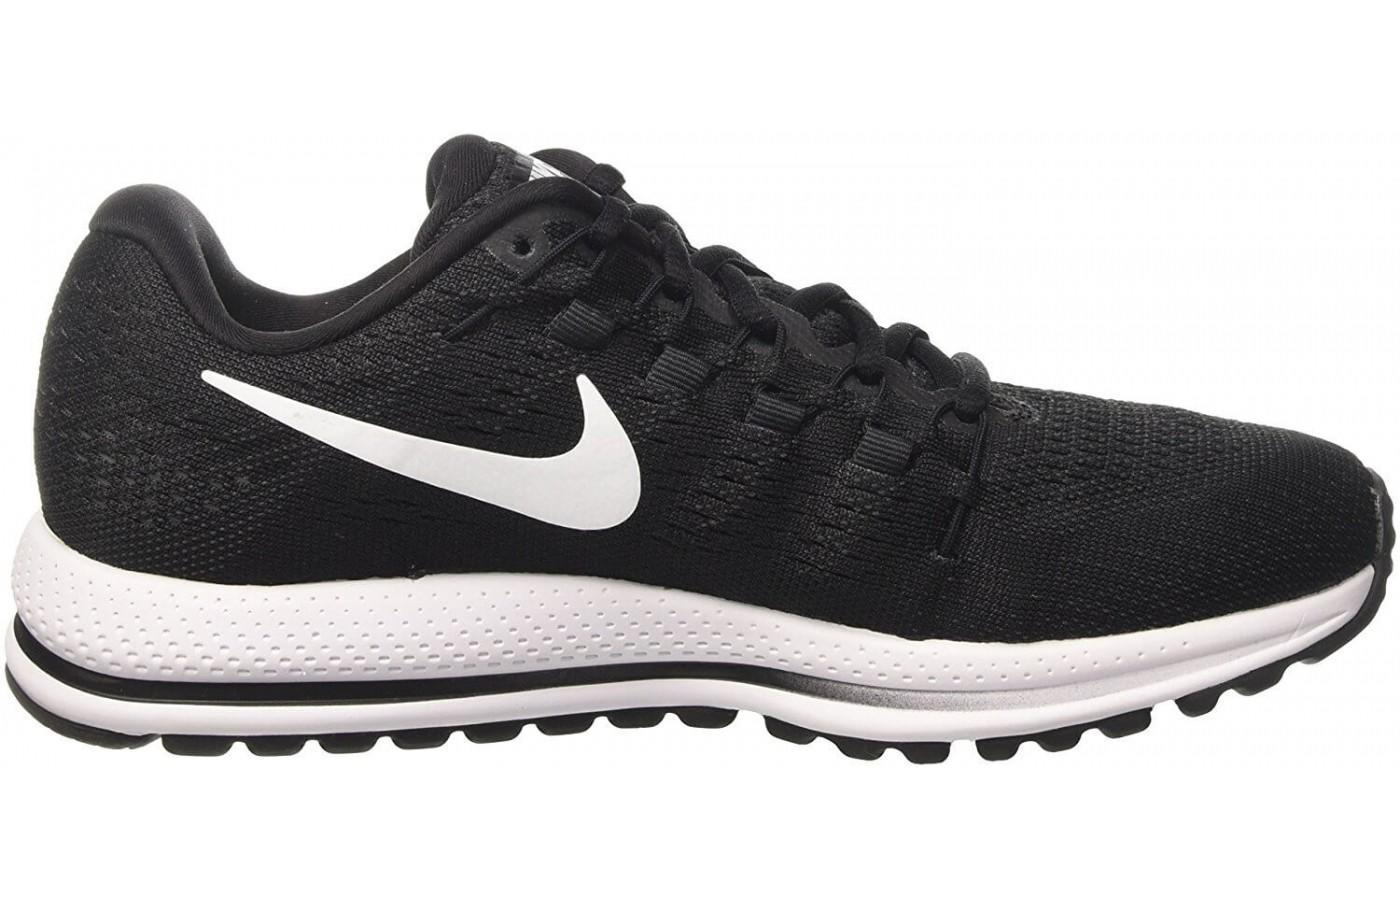 The Nike Air Zoom Vomero 12 has lots of foam cushioning